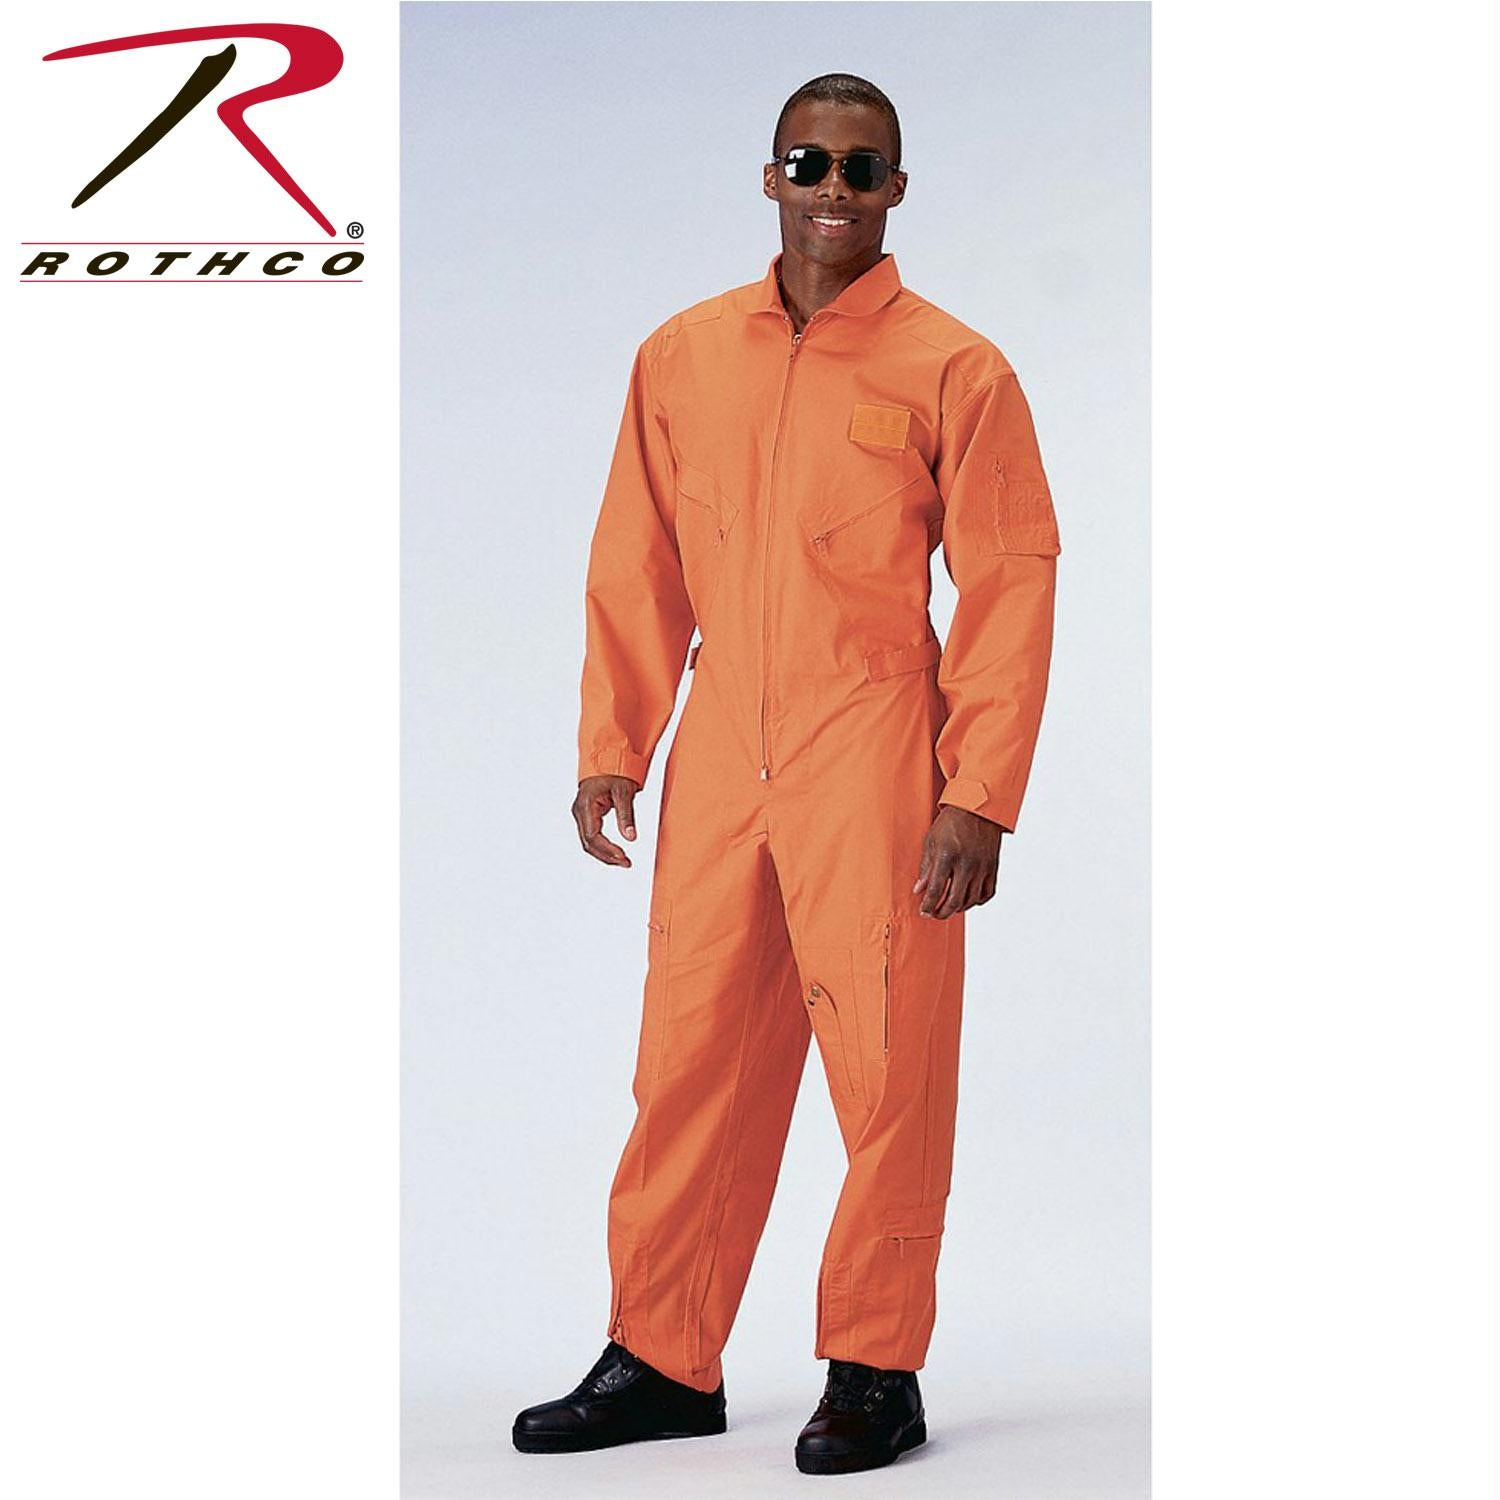 Rothco Flightsuits - Orange / 2XL